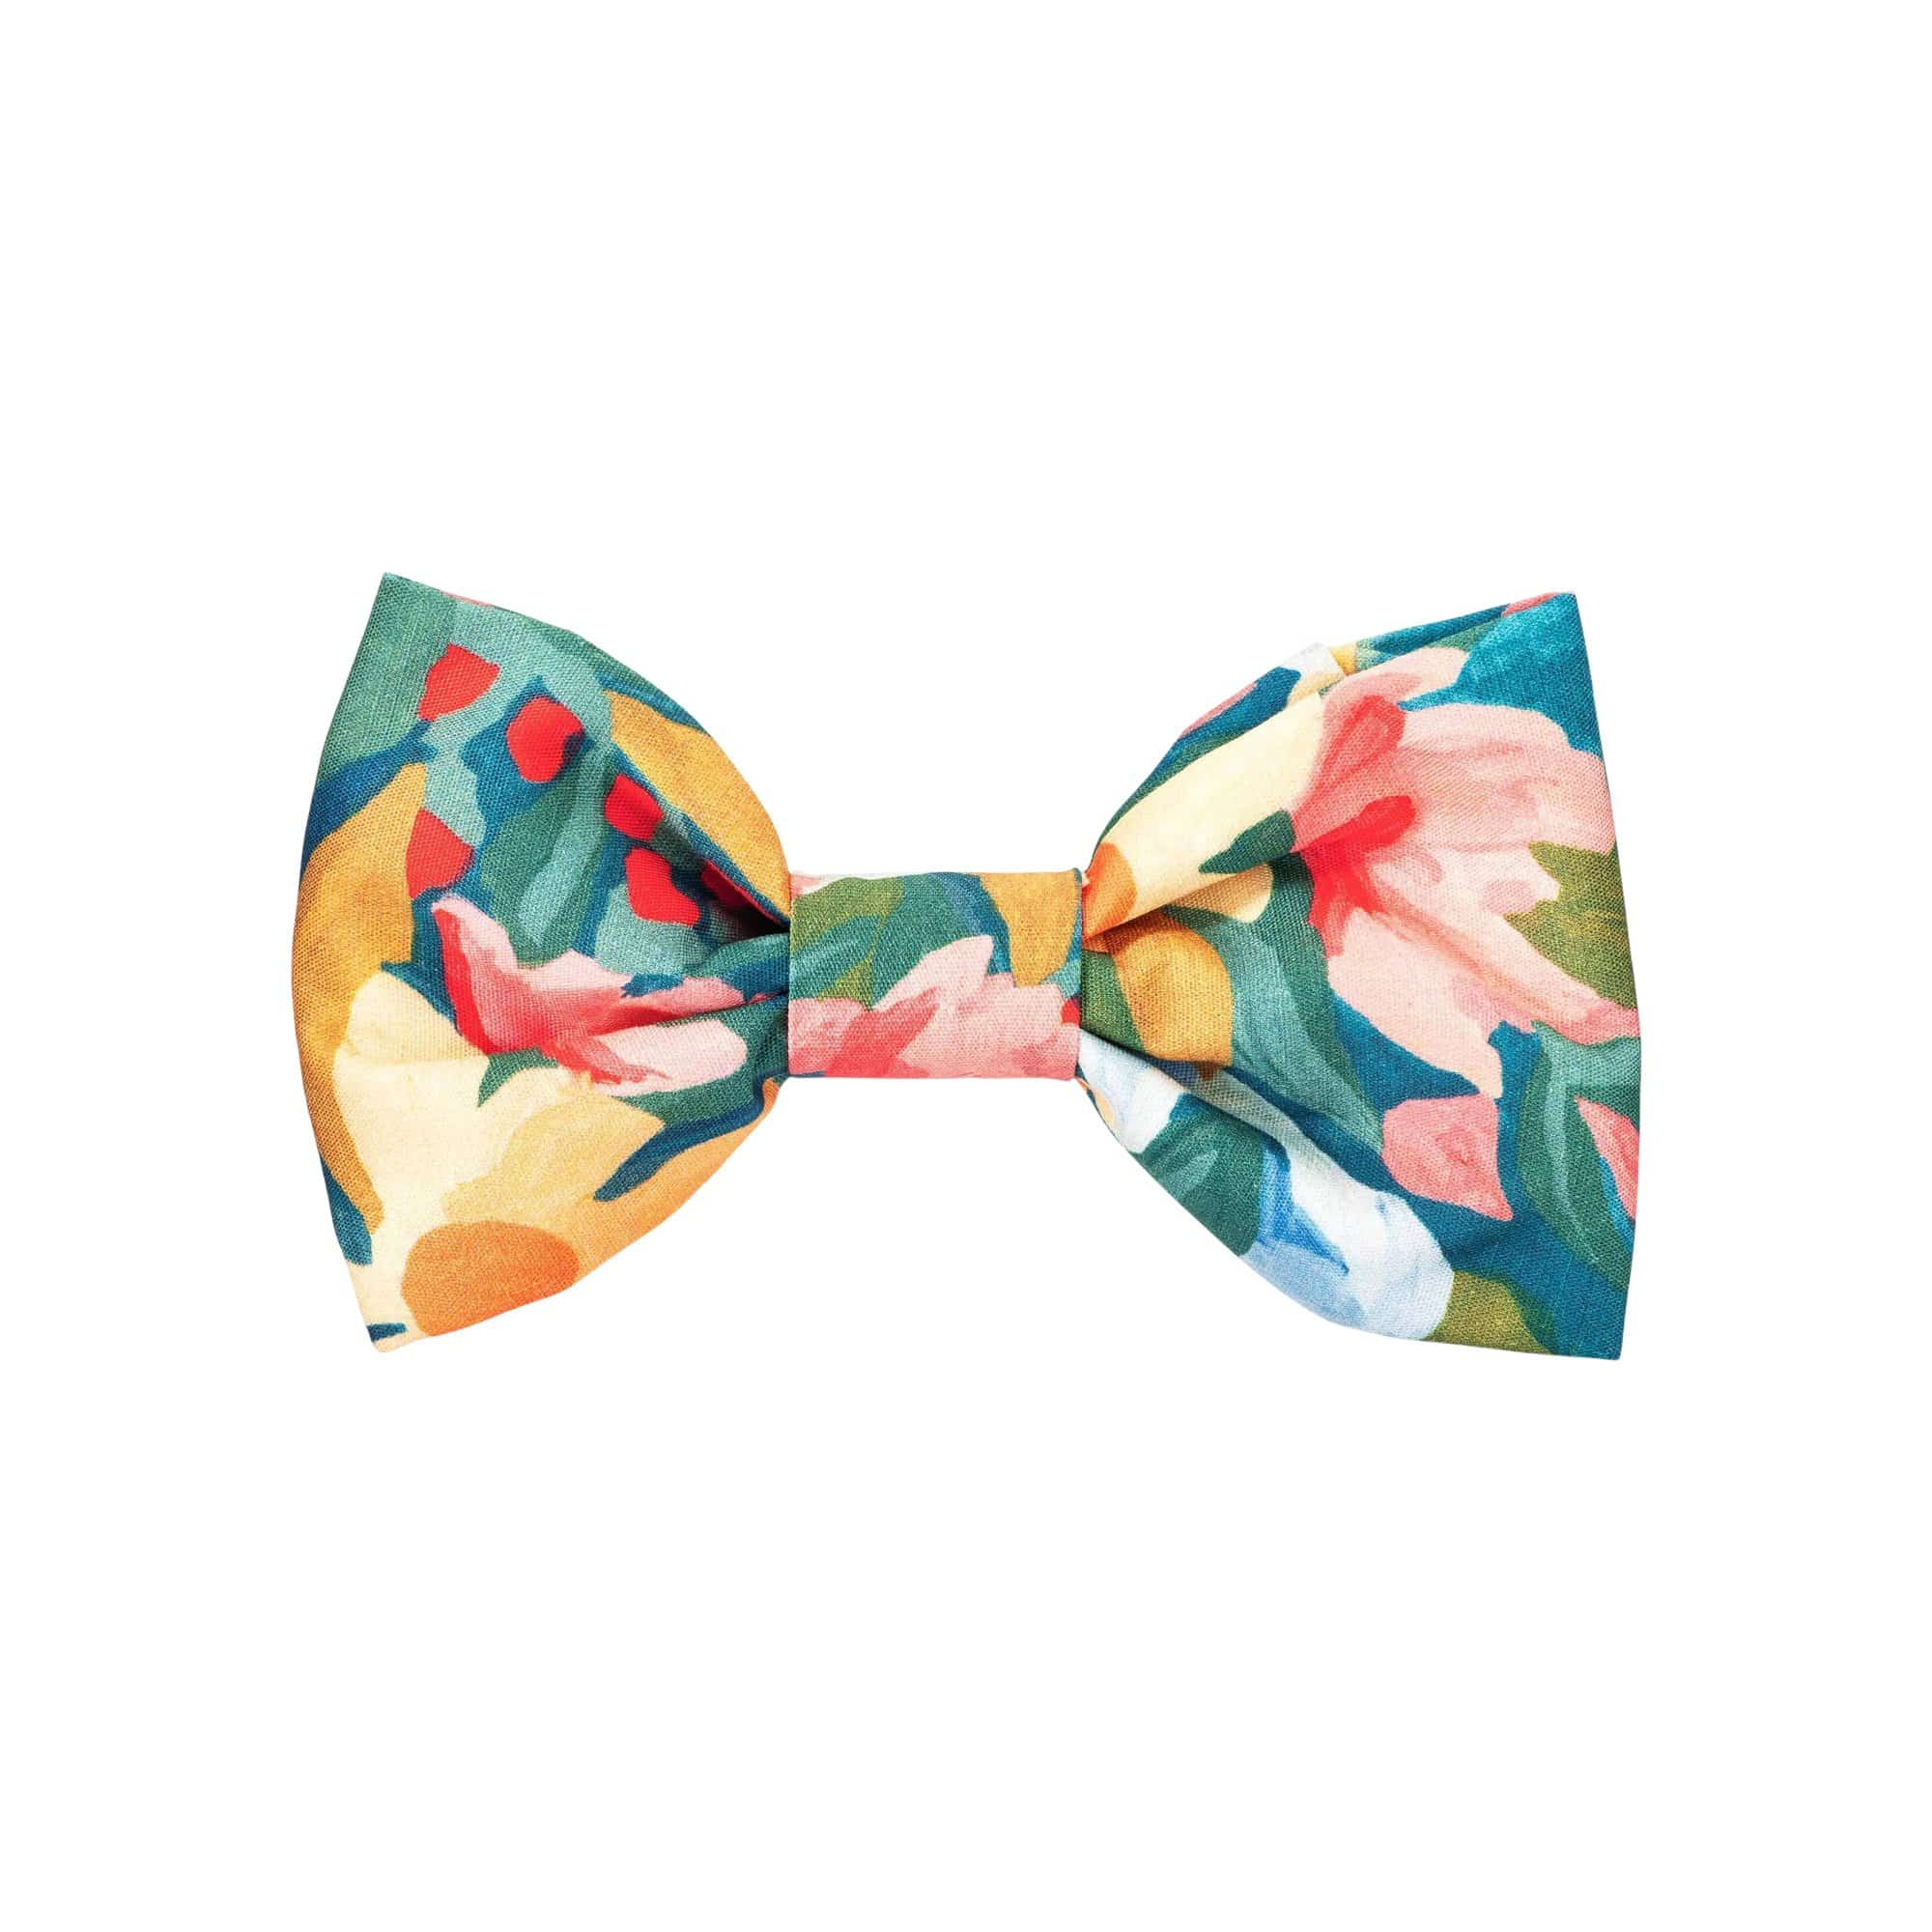 The Foggy Dog Bandanas + Bow Ties Wildflower Bow Tie